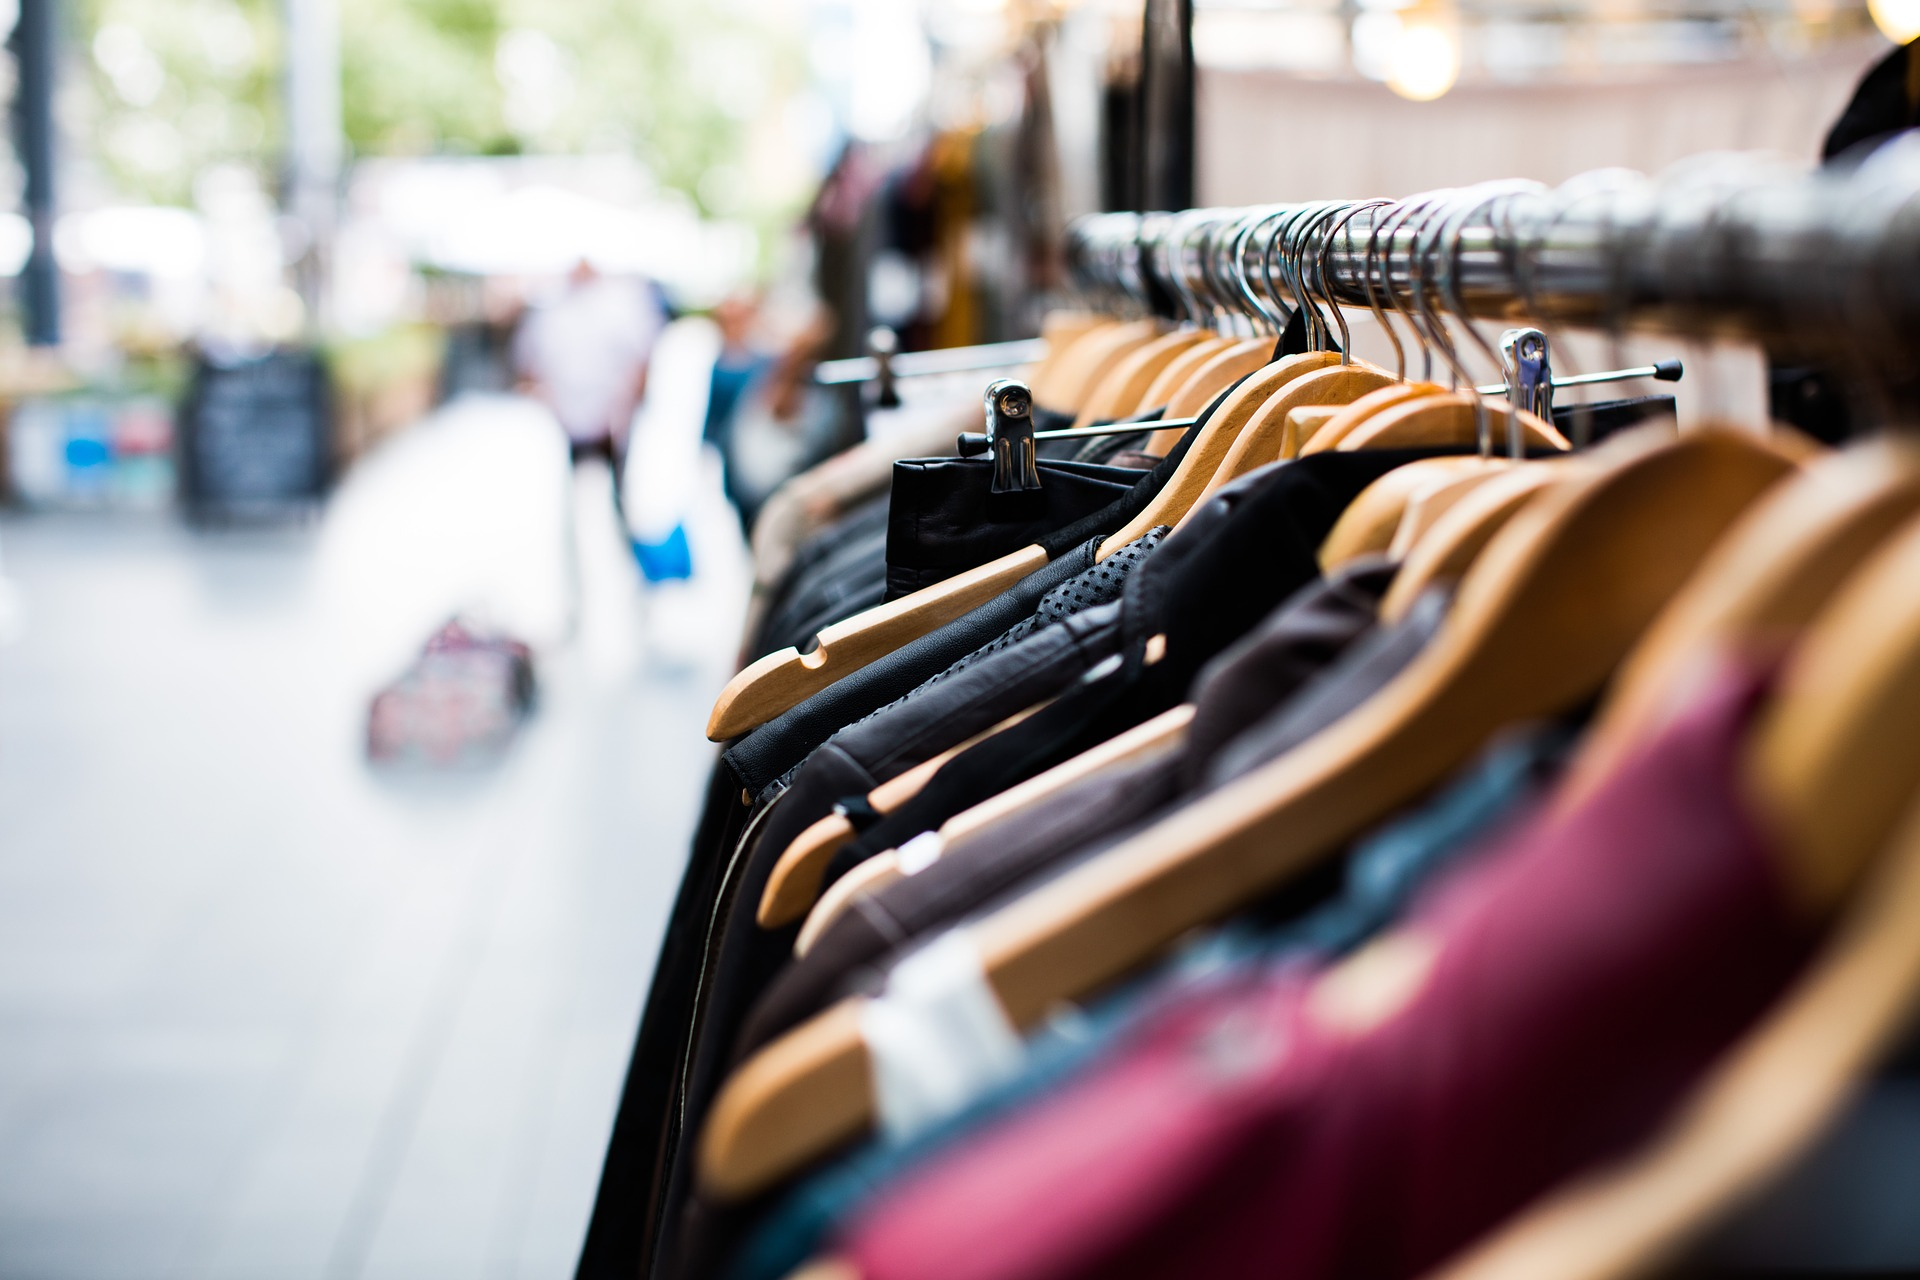 An assortment of clothes are displayed on hangers on a rack outside, pointing towards an open sidewalk ahead.